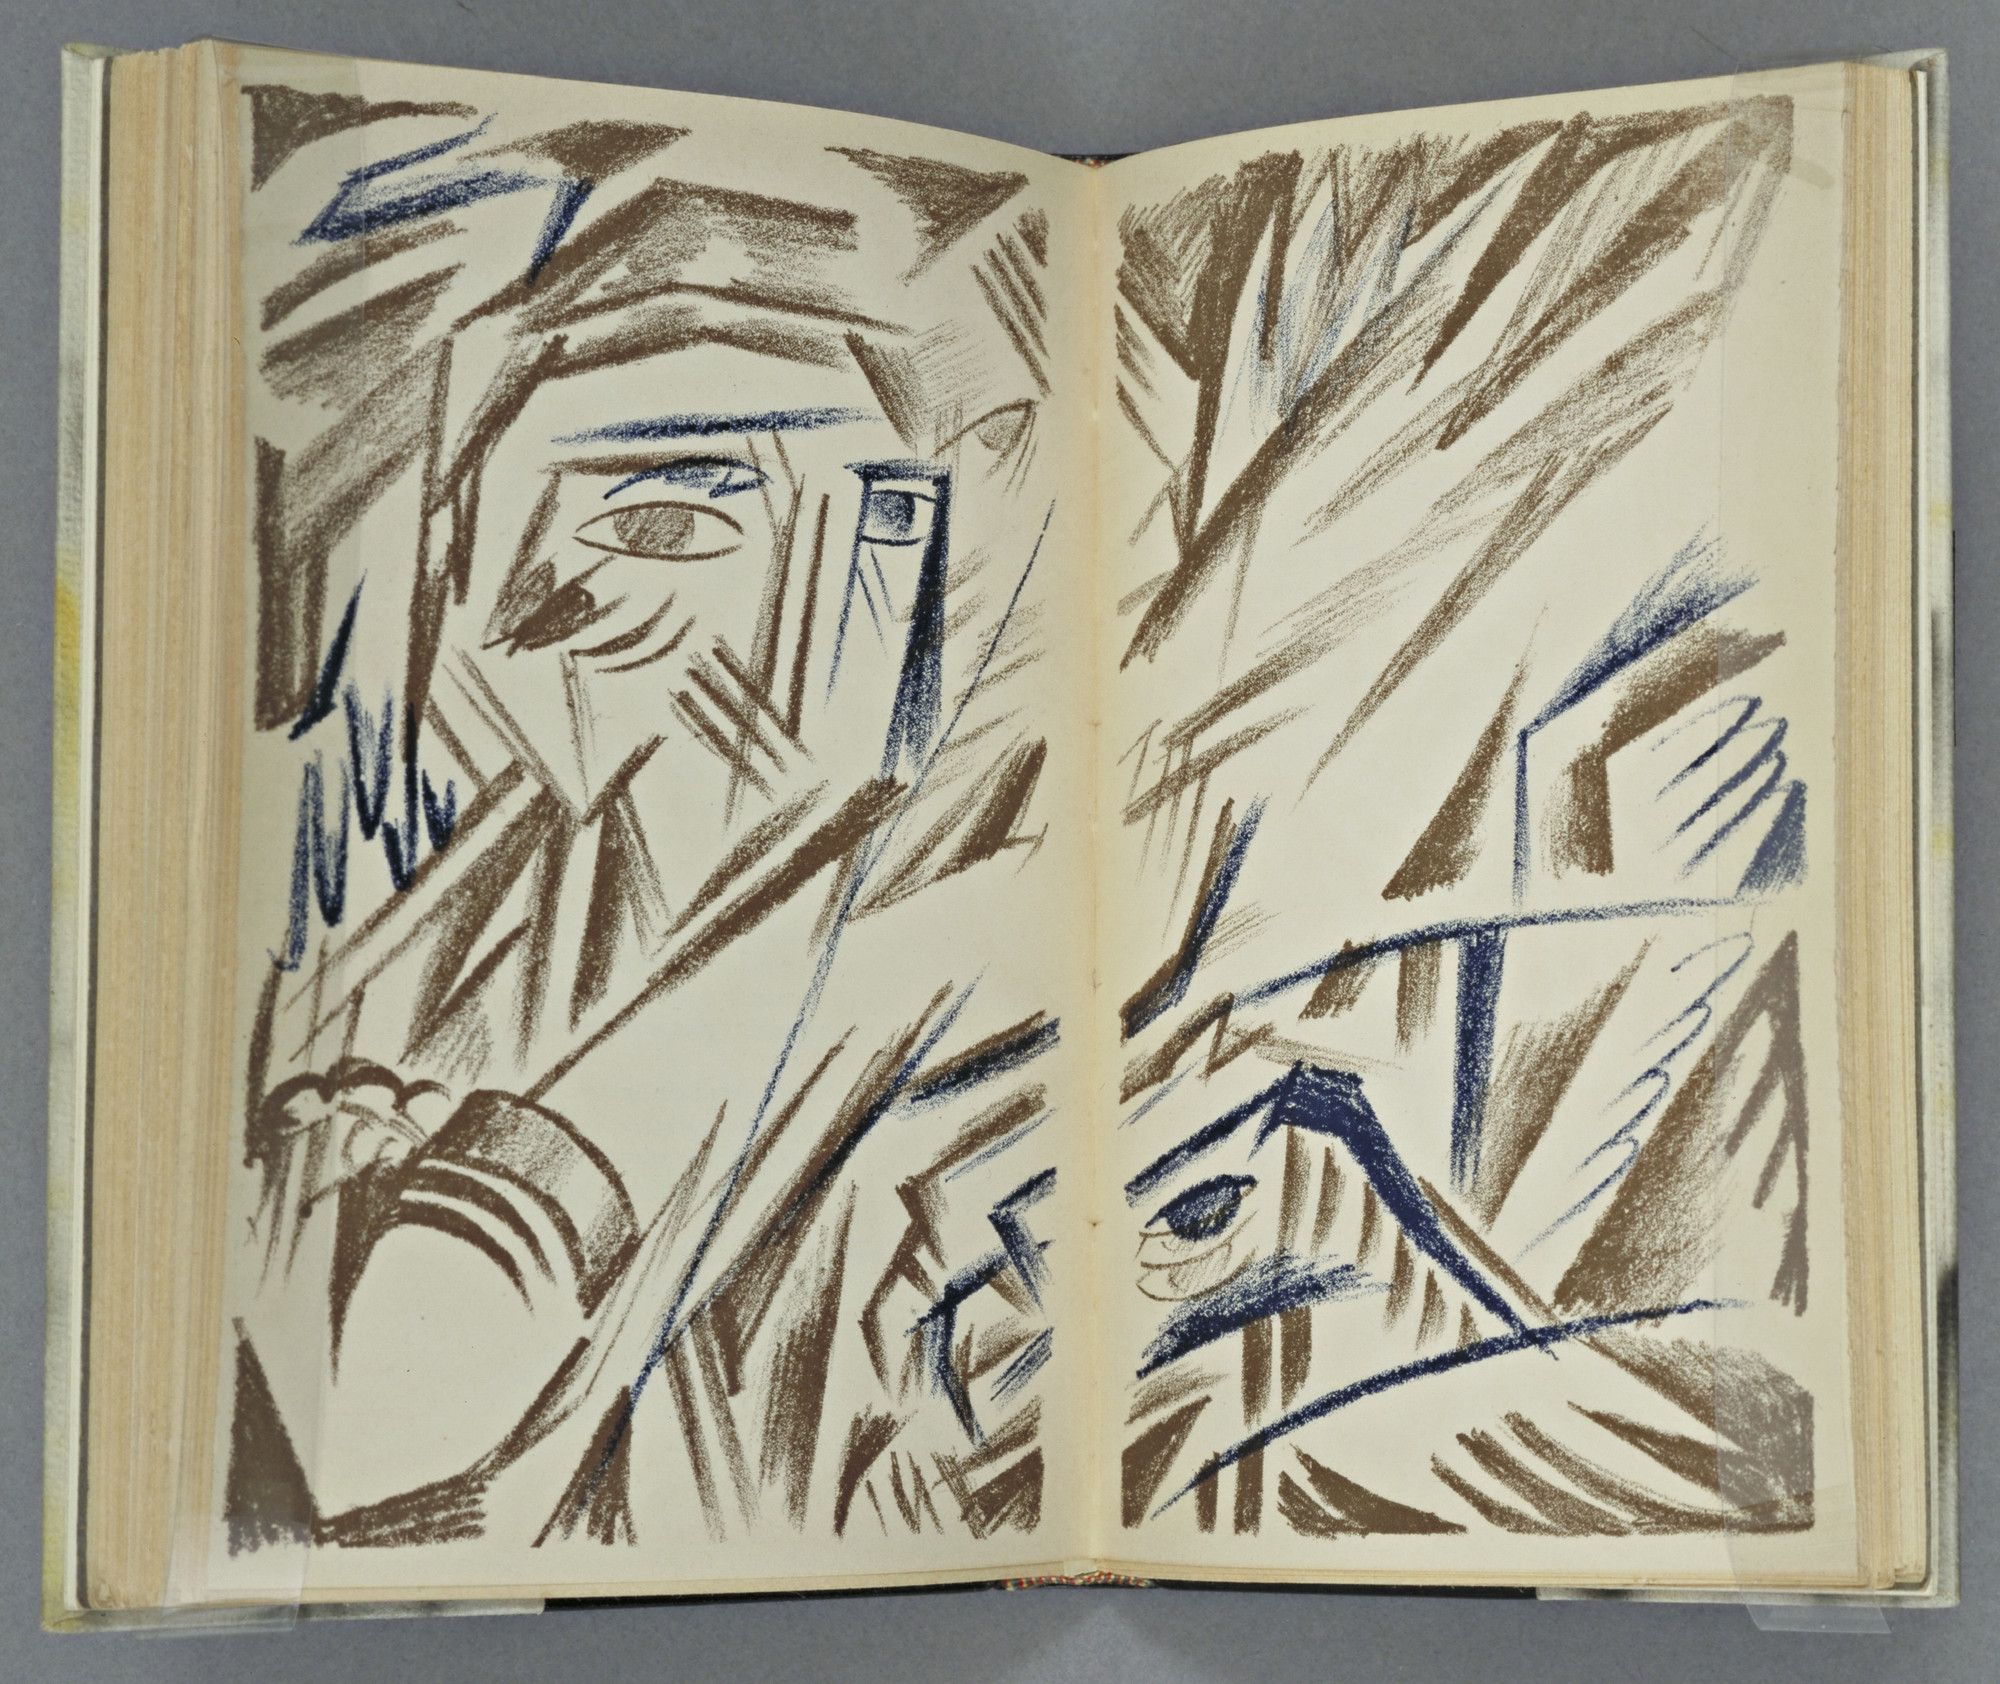 Natalia Goncharova. Double page plate (between pages 96 and 97) from Vertogradari Nad Lozami (Gardeners over the Vines). 1913